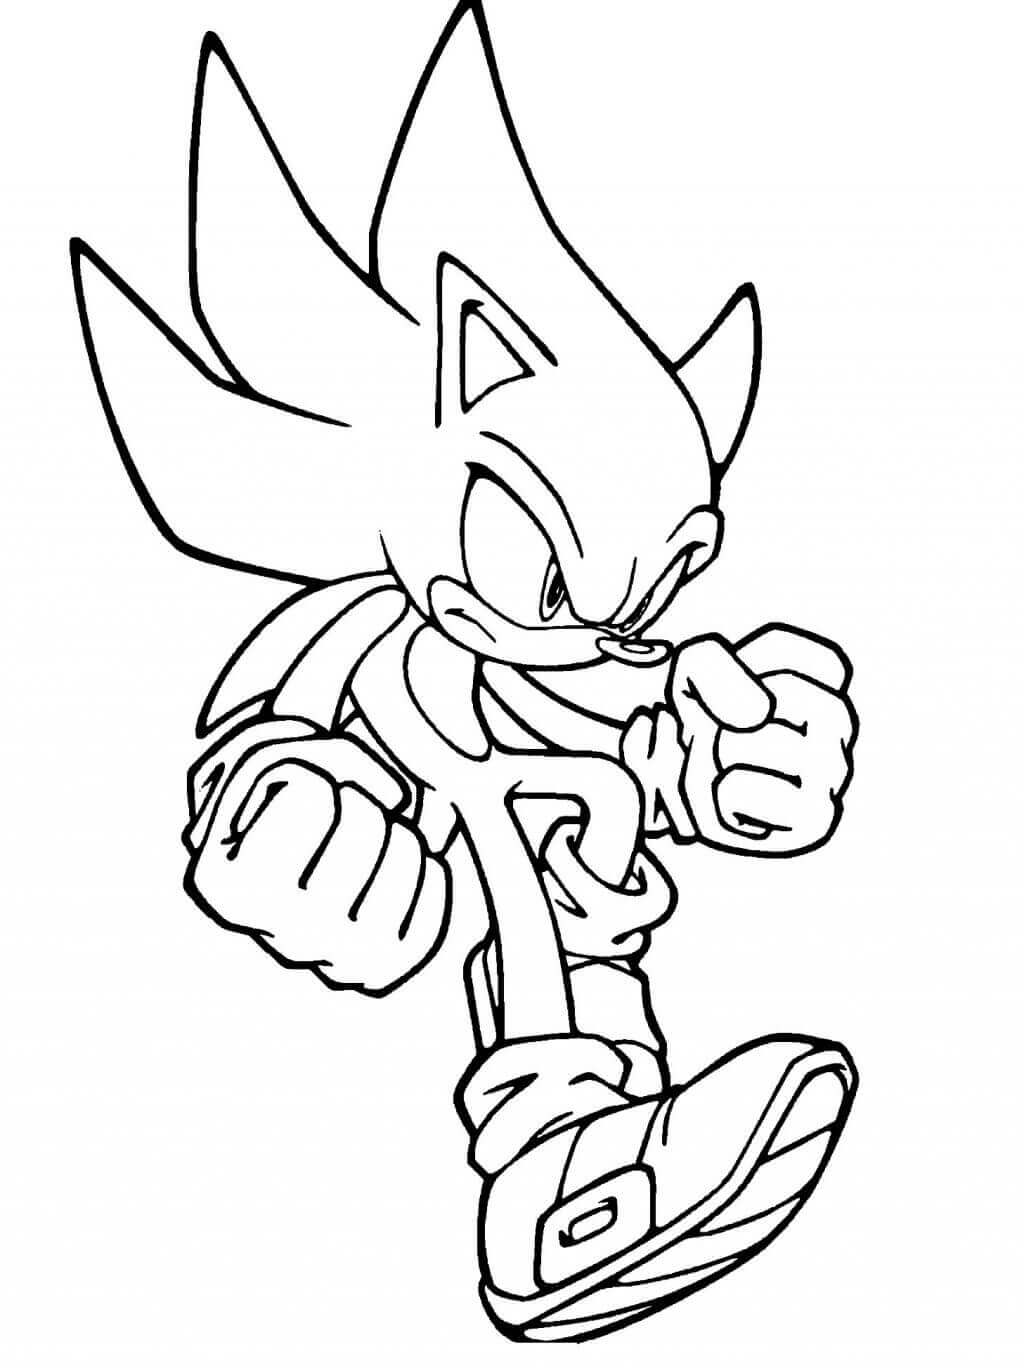 gold sonic coloring pages - photo#24